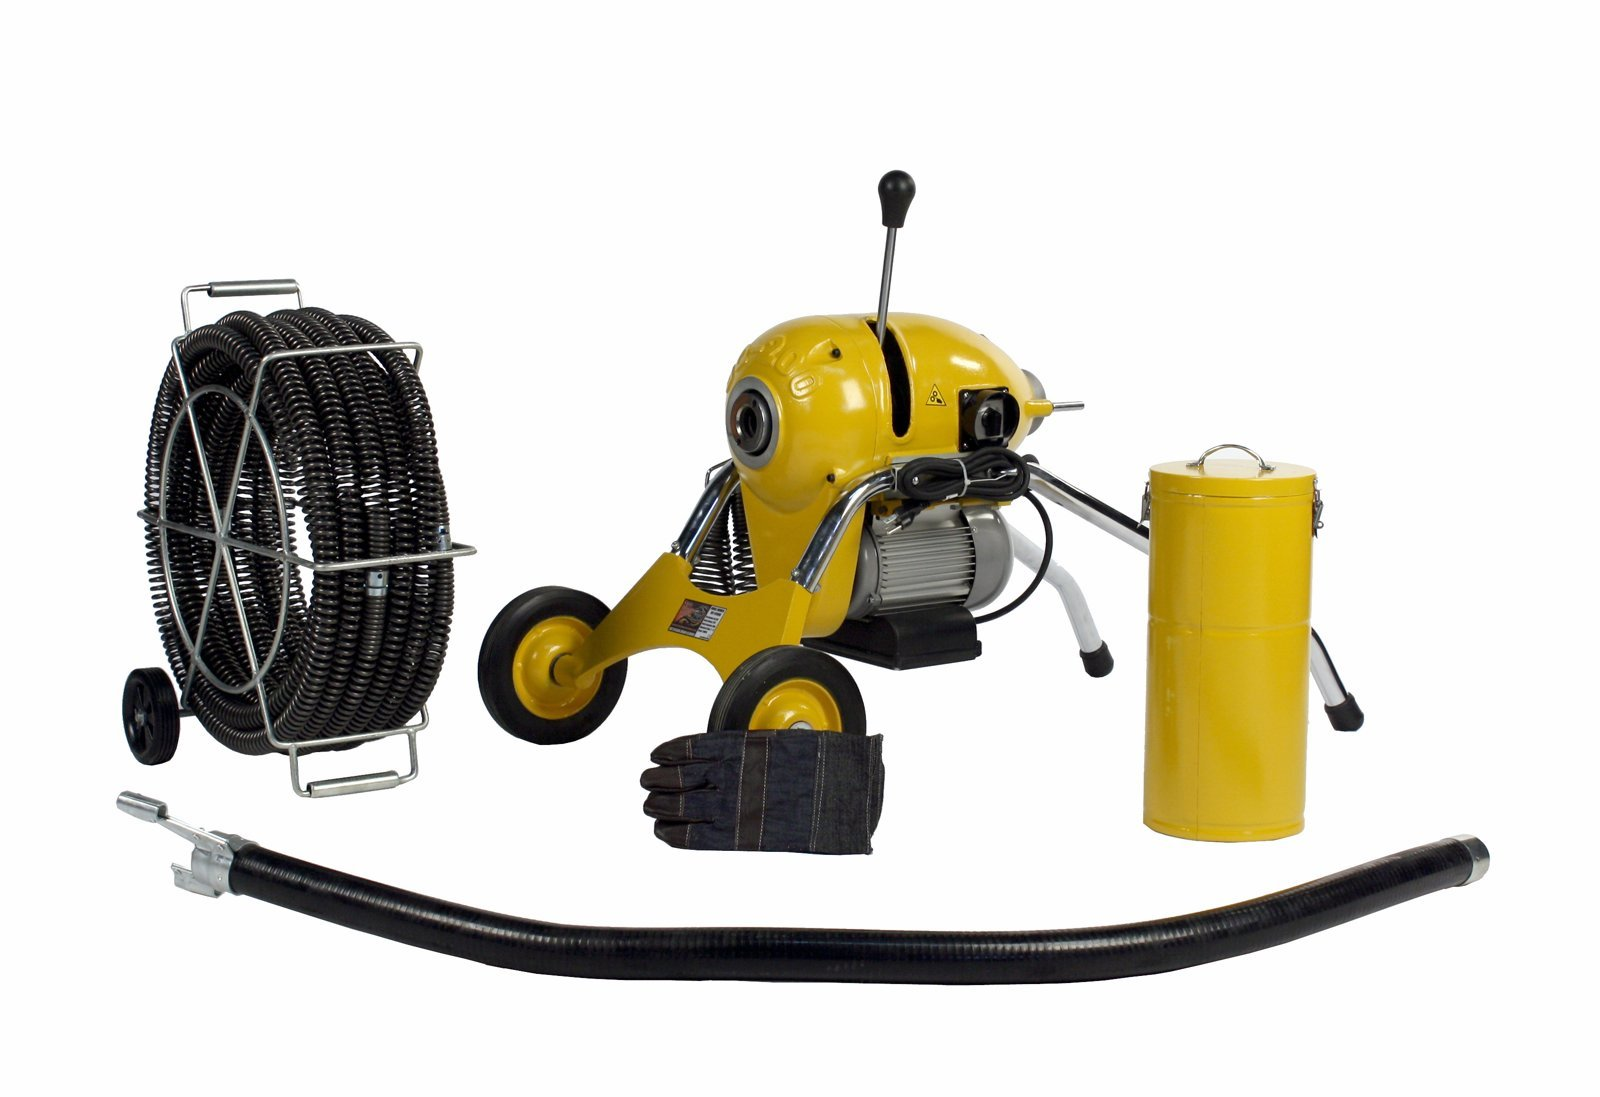 Steel Dragon Tools K1500B Sewer Line Pipe Drain Cleaning Machine fits RIDGID C-11 Snake Cable